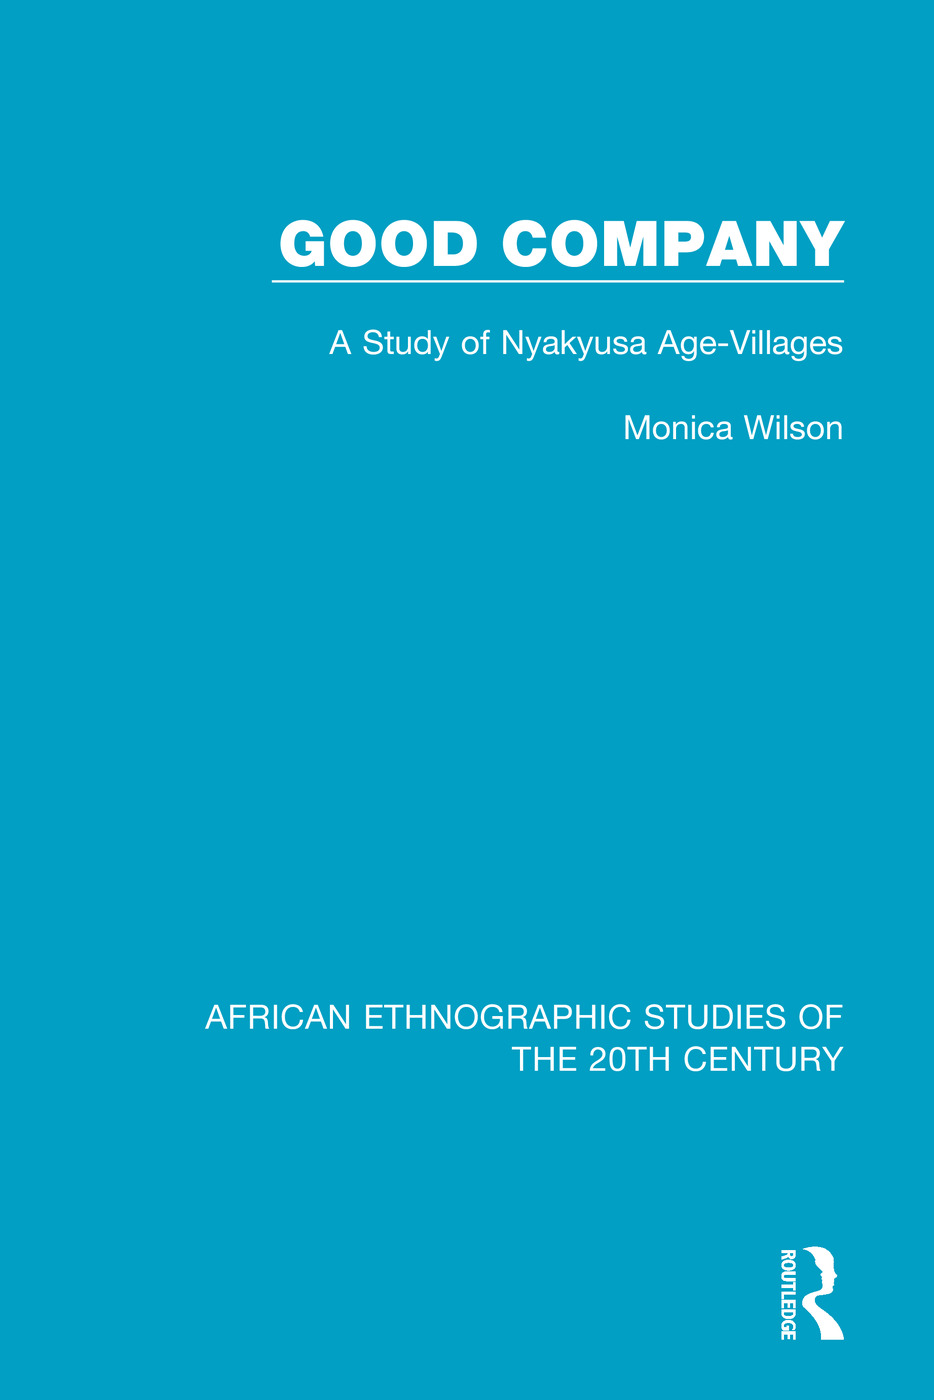 Good Company: A Study of Nyakyusa Age-Villages book cover